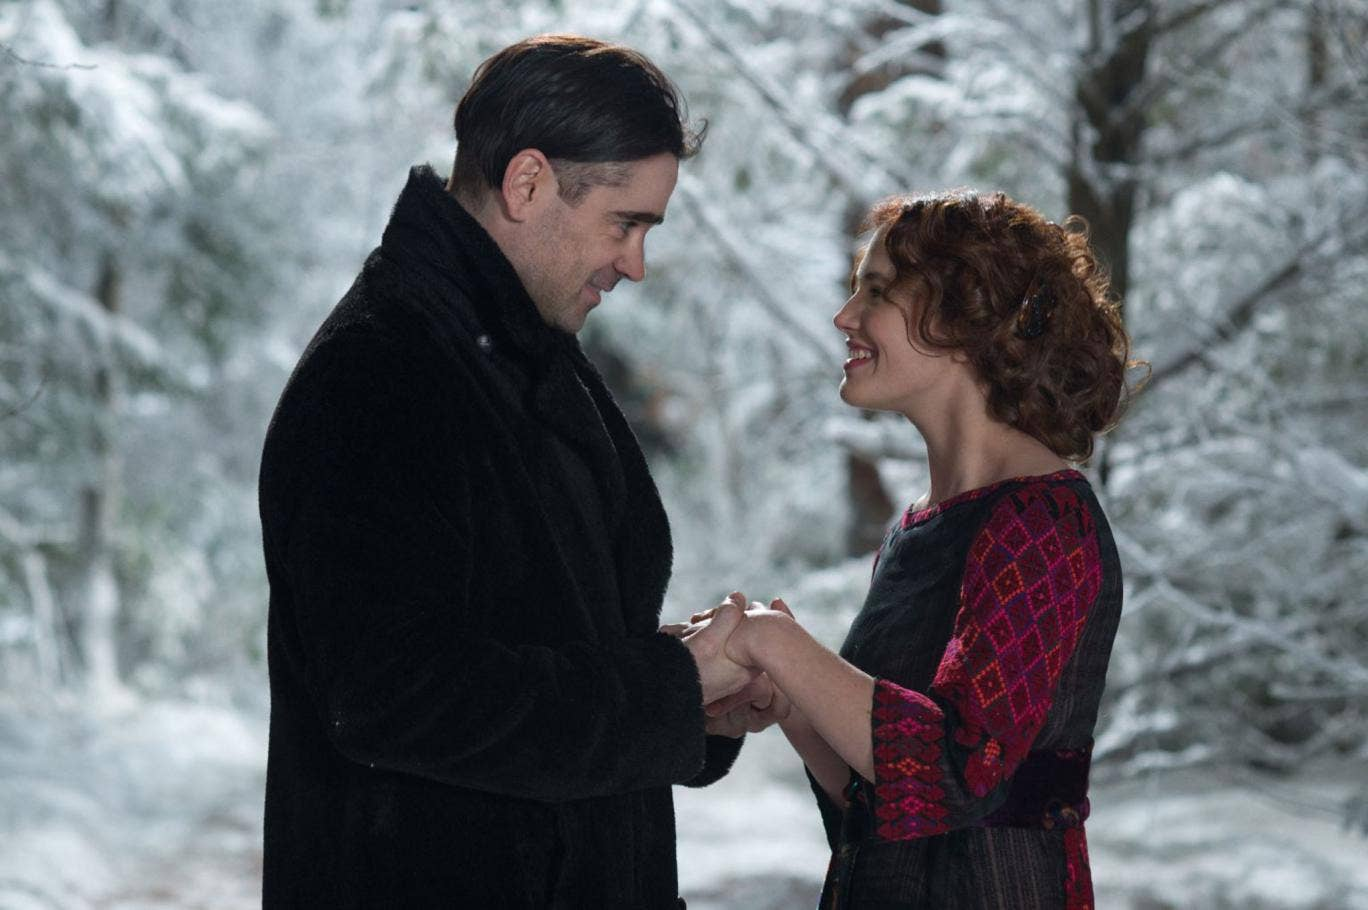 Colin Farrell with Jessica Brown Findlay in 'A New York Winter's Tale'